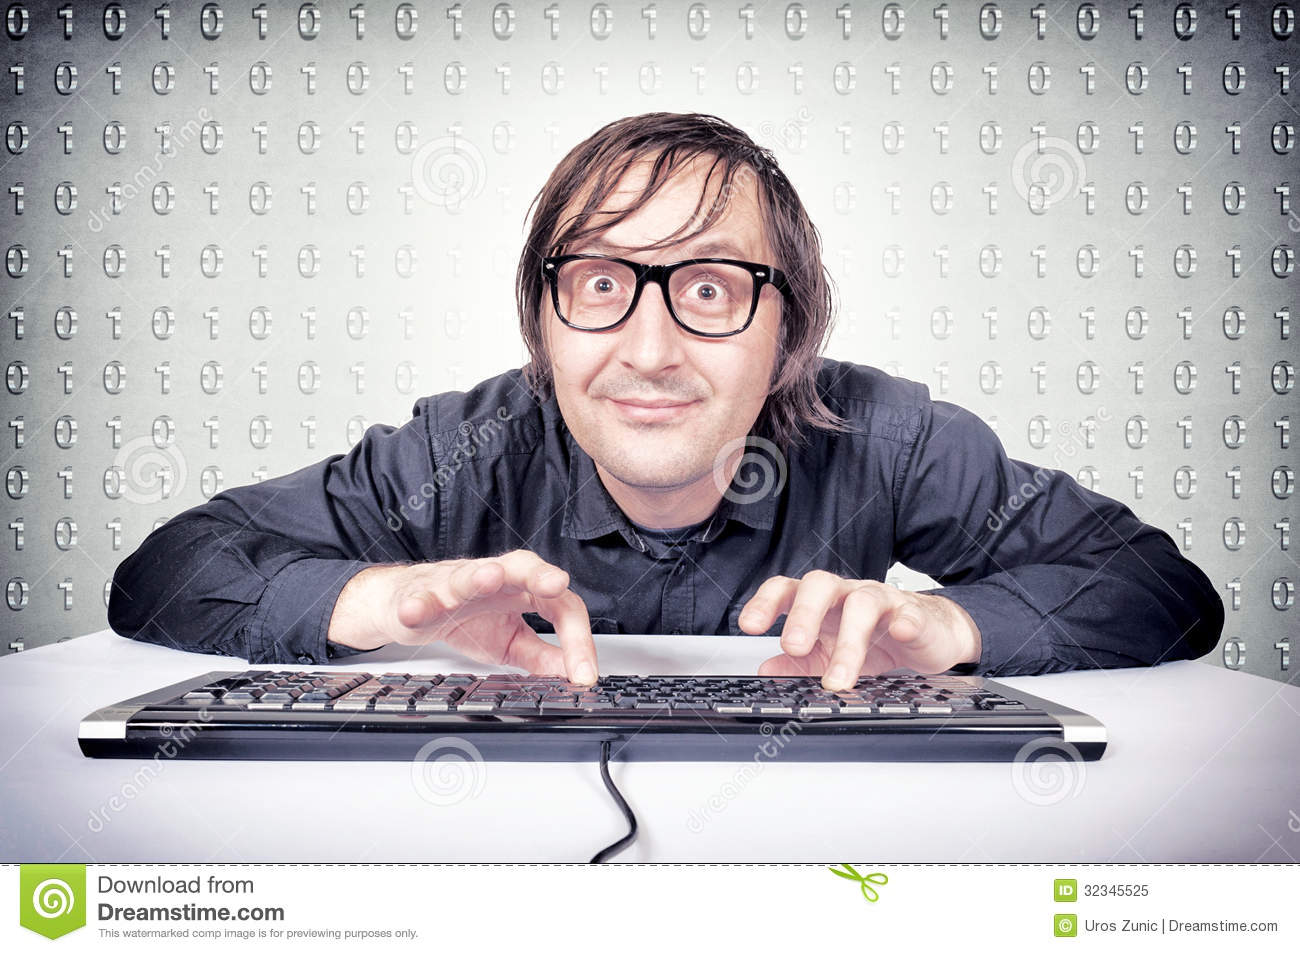 Funny Hacker Royalty Free Stock Photo - Image: 32345525